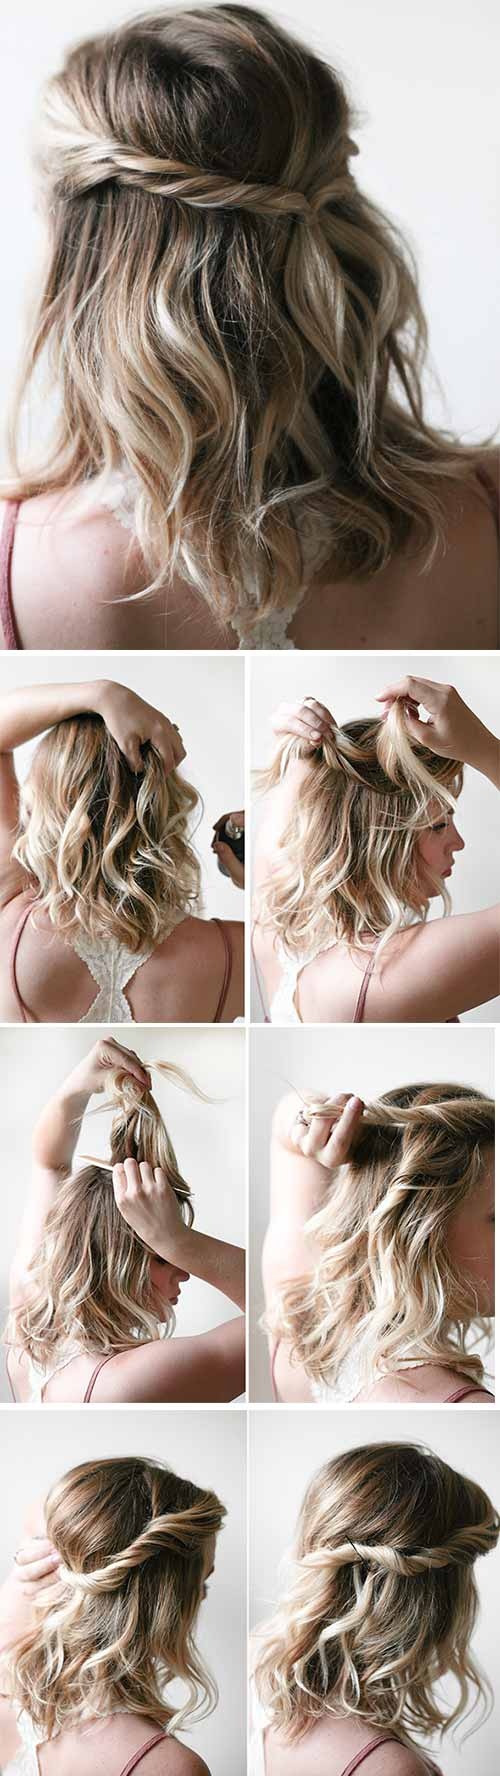 10 Incredible DIY Short Hairstyles - A Step-By-Step Guide